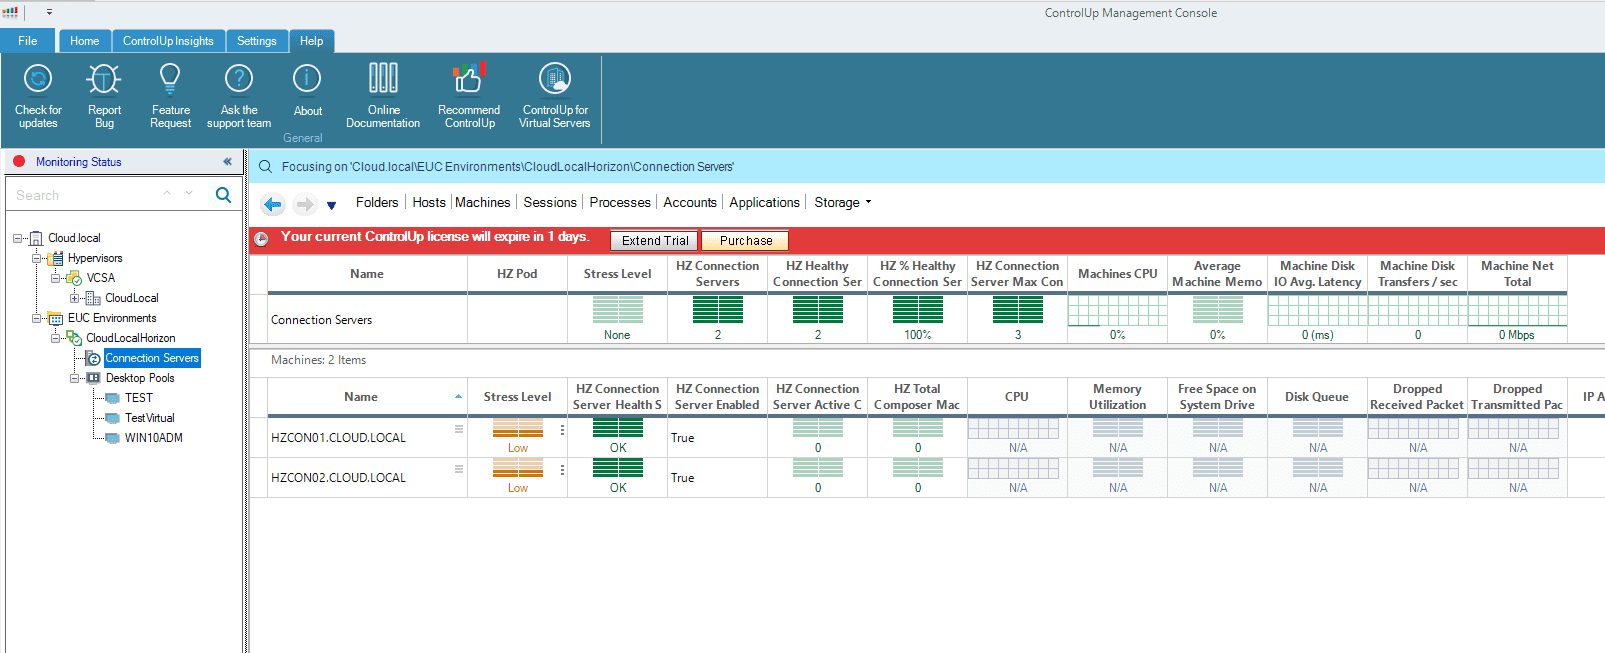 Displaying-the-VMware-Horizon-key-performance-indicators-with-ControlUp-8.1